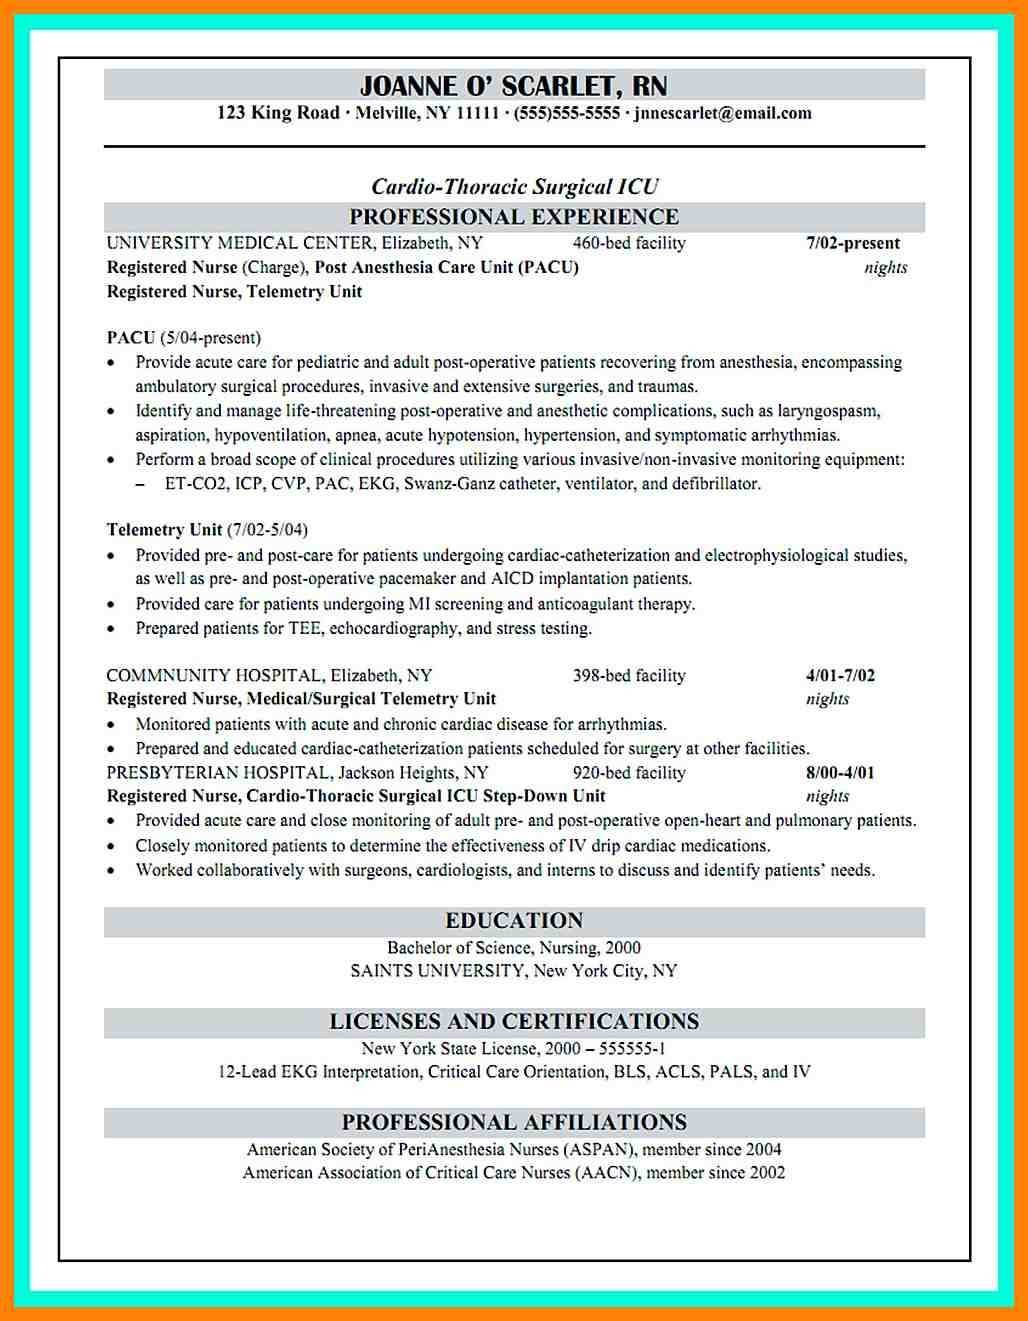 Pacu RN Resume Examples 2019 Pacu Resume Samples 2020 recovery room rn resume pacu nursing resume samples pacu rn job description for resume experienced pacu rn resume resume for pacu rn pacu nurse resume pacu nurse resume objective pacu nurse resume cover letter pacu rn resume objective pre op pacu rn resume pacu rn resume sample